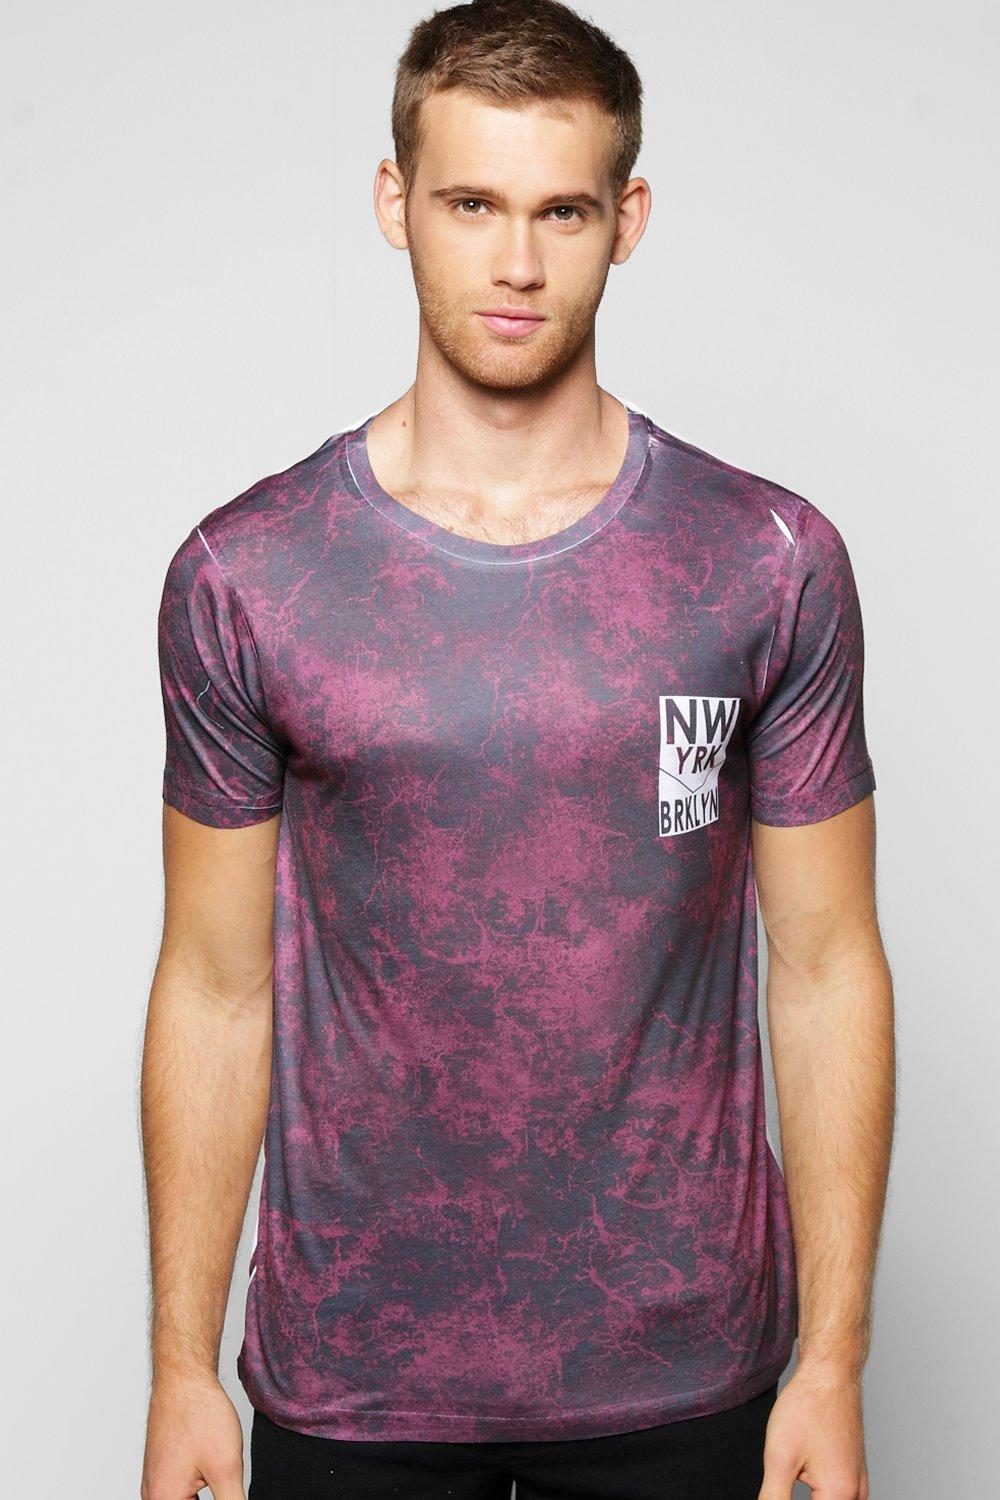 NYC Brooklyn Marble Sublimation T Shirt